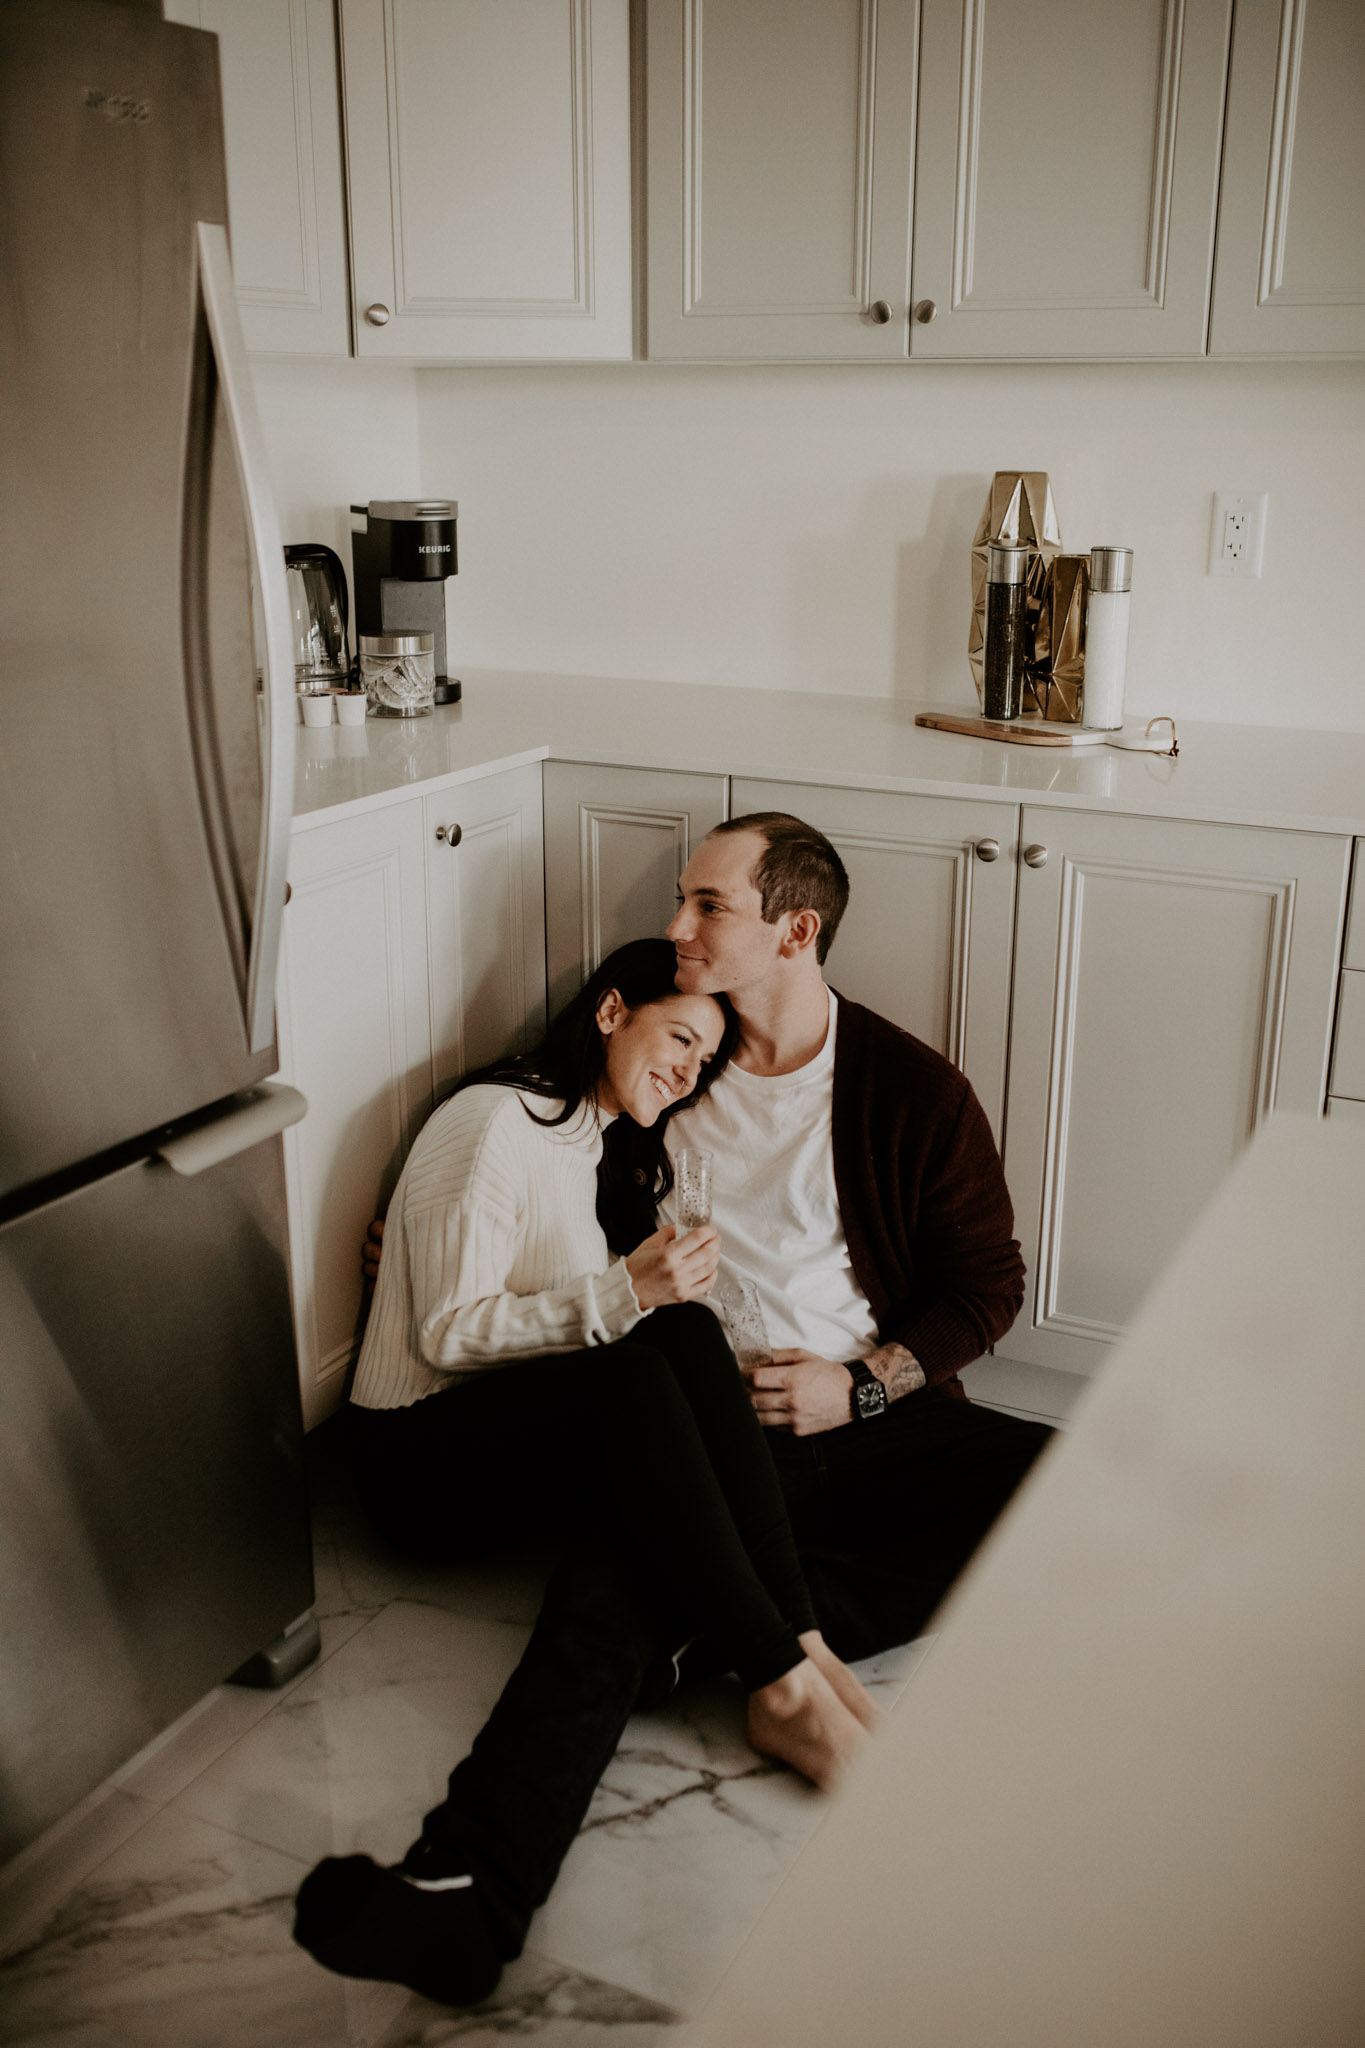 In Home Engagement Session - cuddles in the kitchen